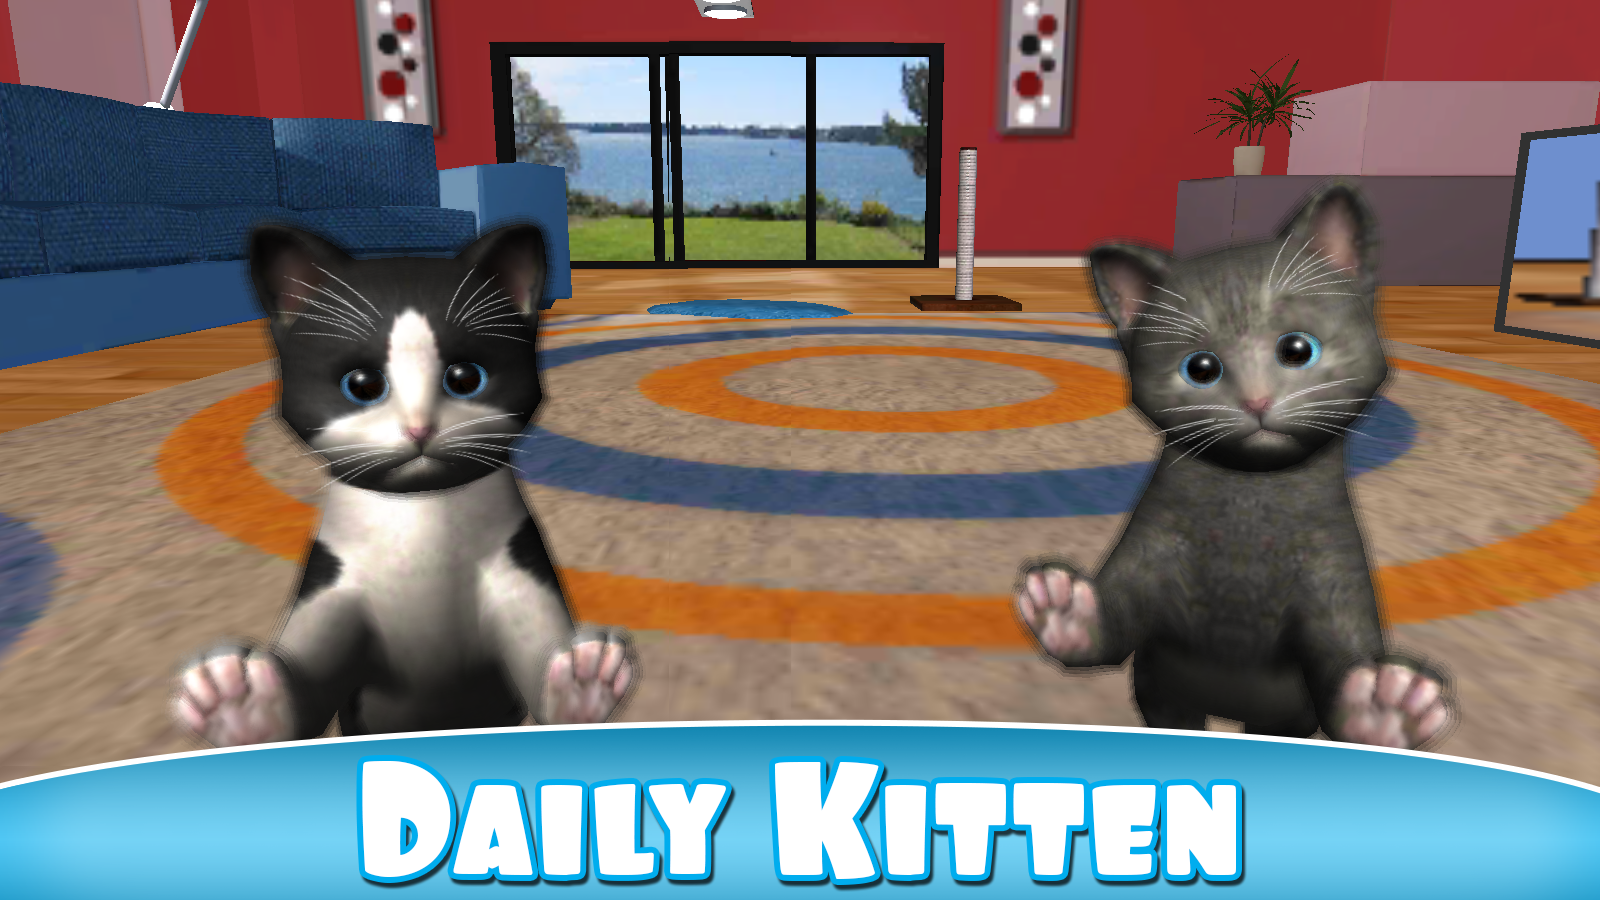 Daily Kitten : virtual cat pet Screenshot 5